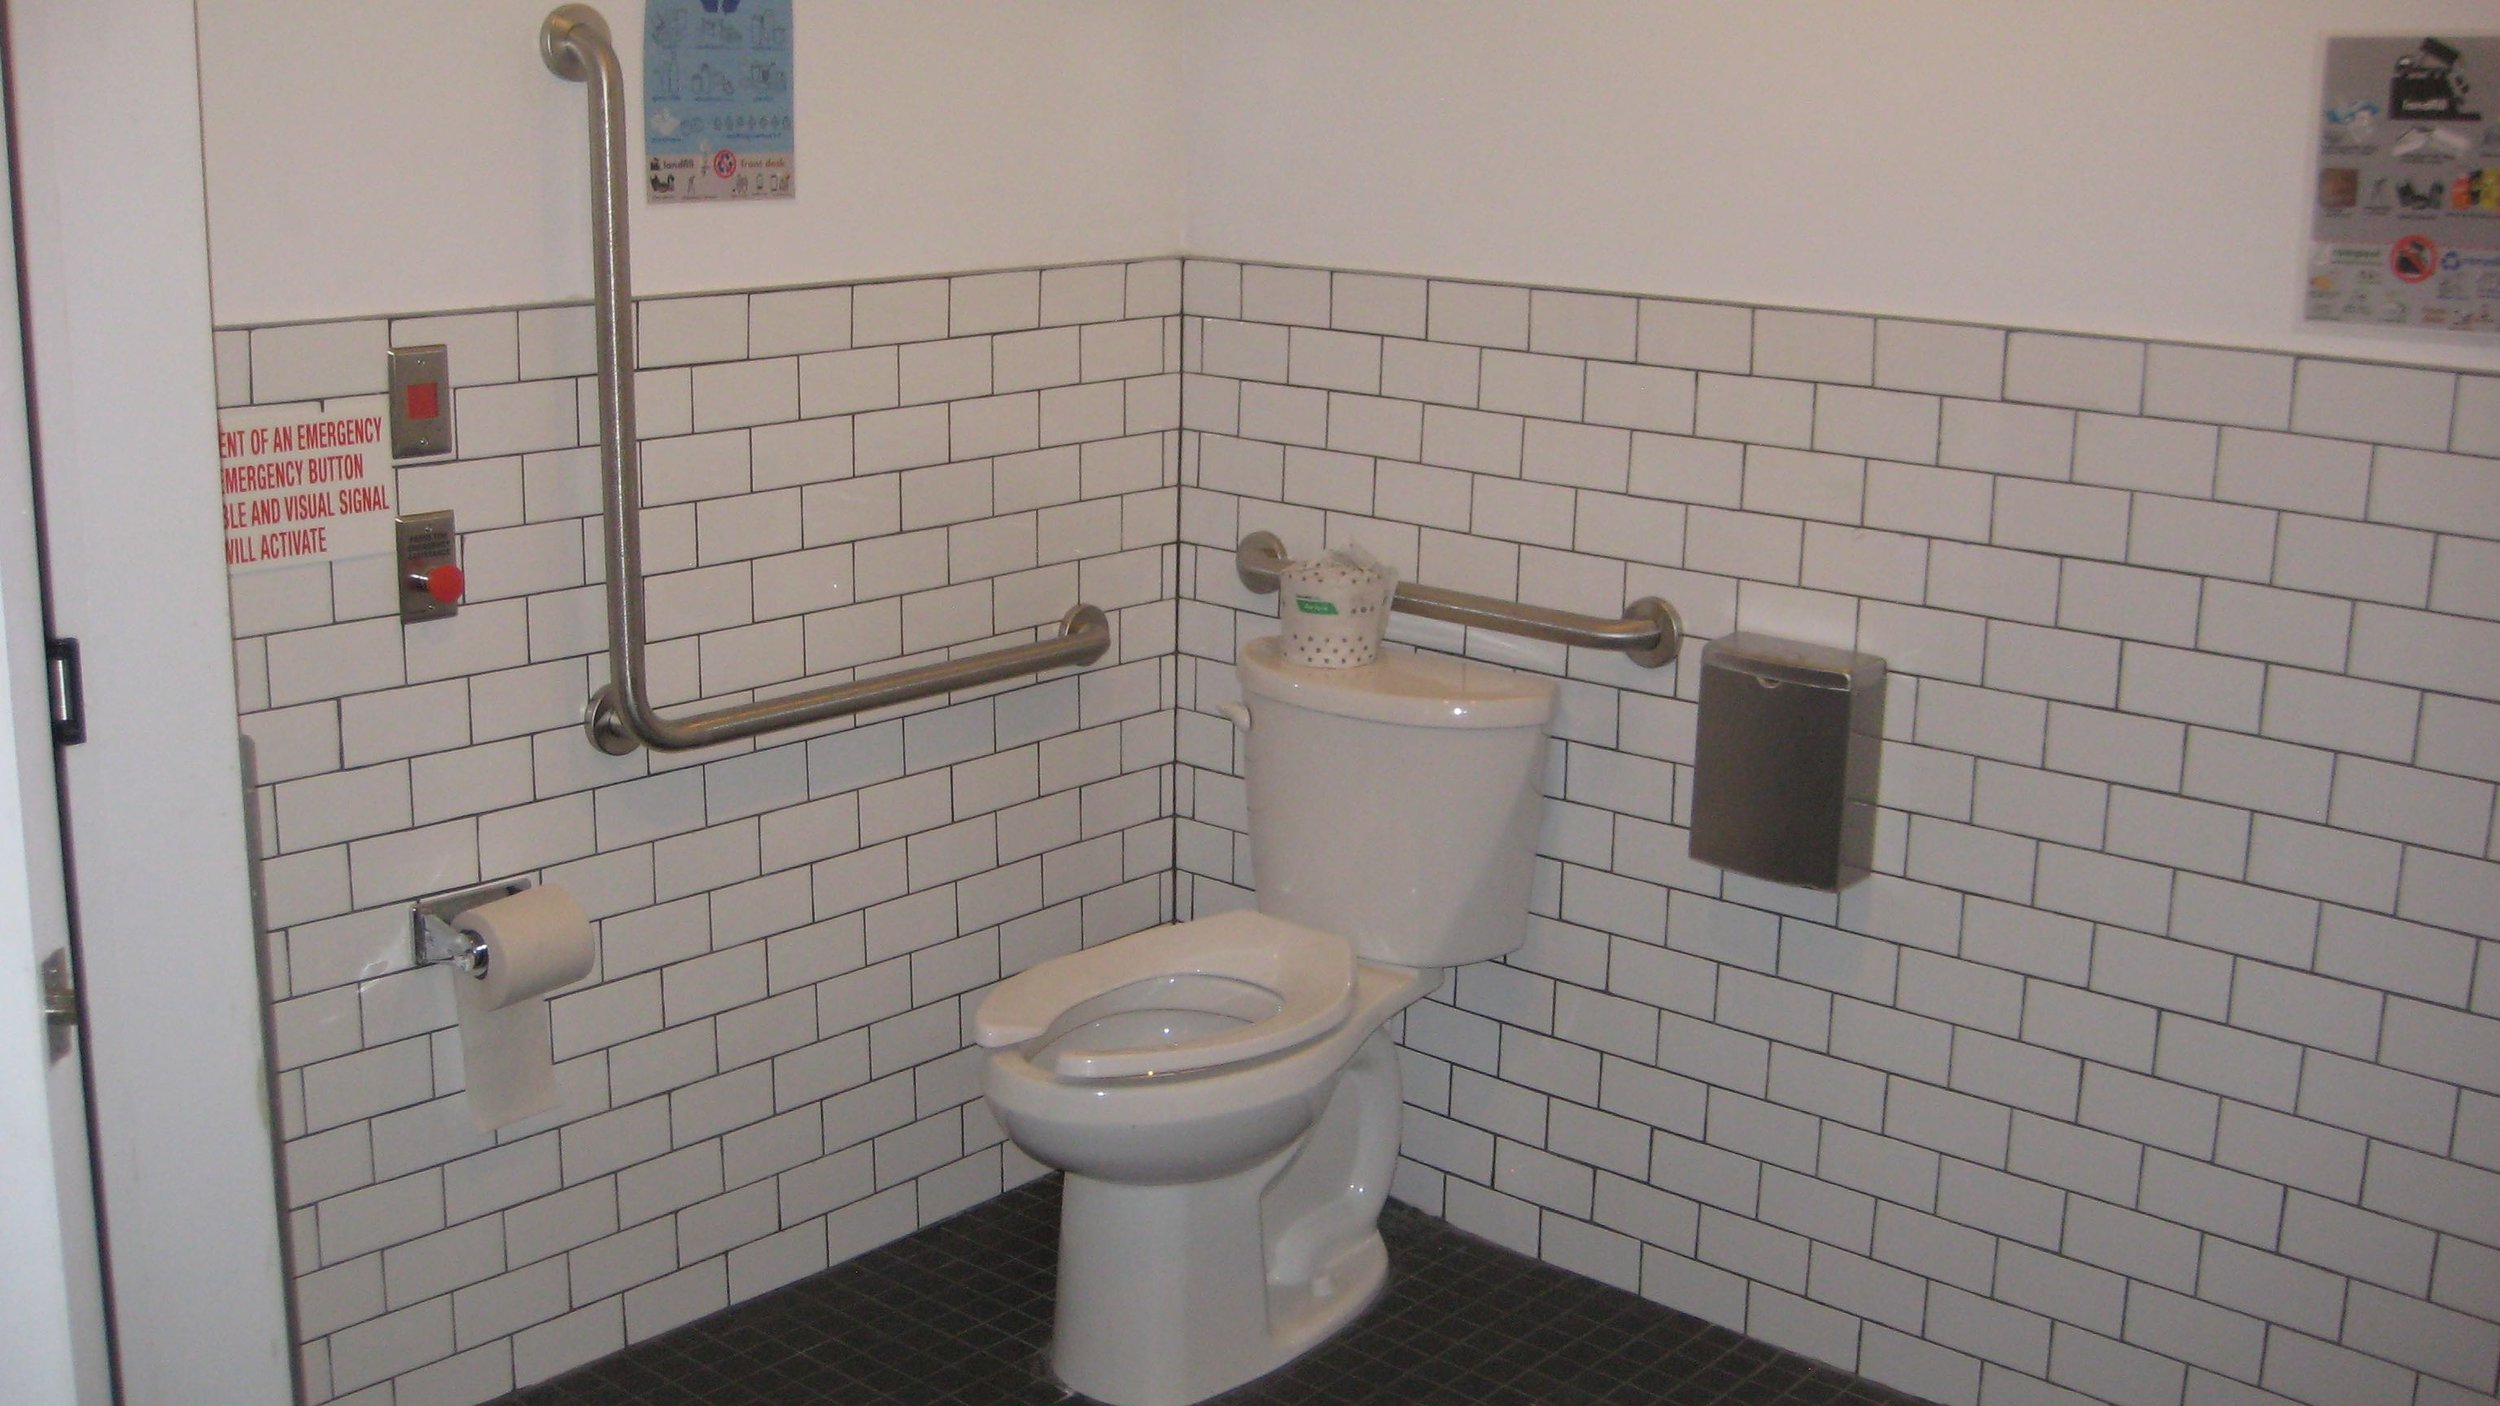 Picture of the accessible washroom including 2 grab bars